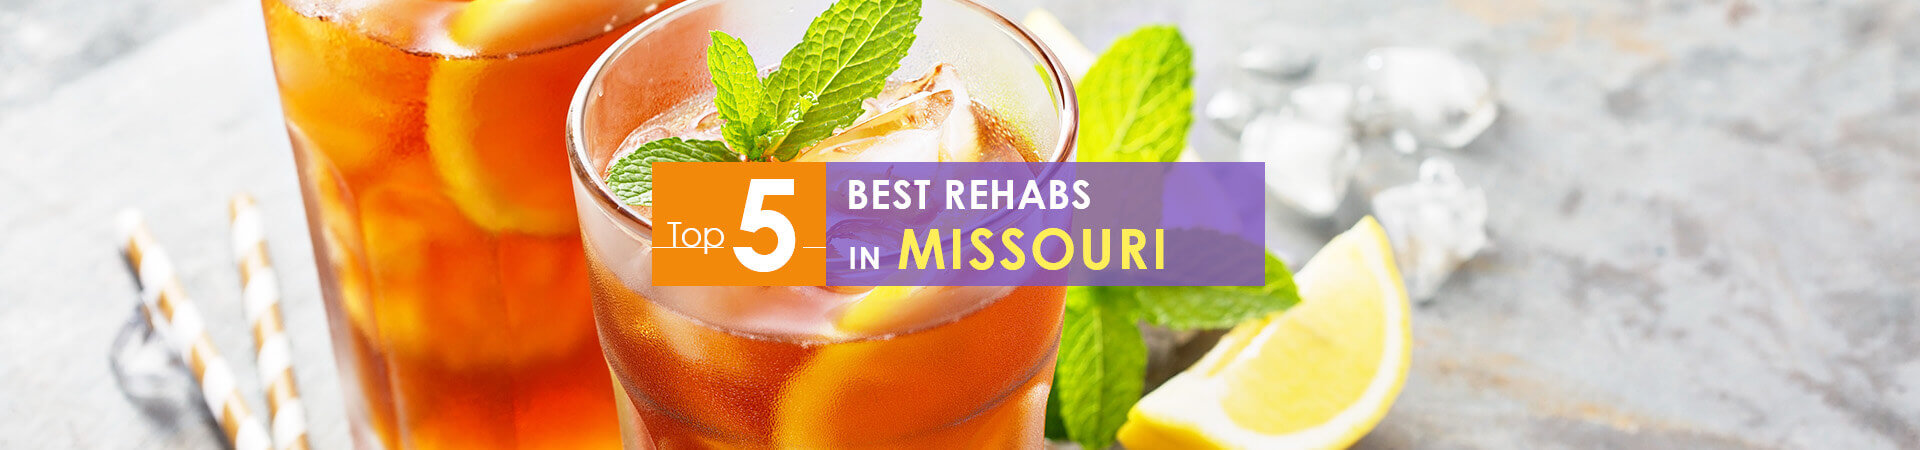 Best rehabs in Missouri